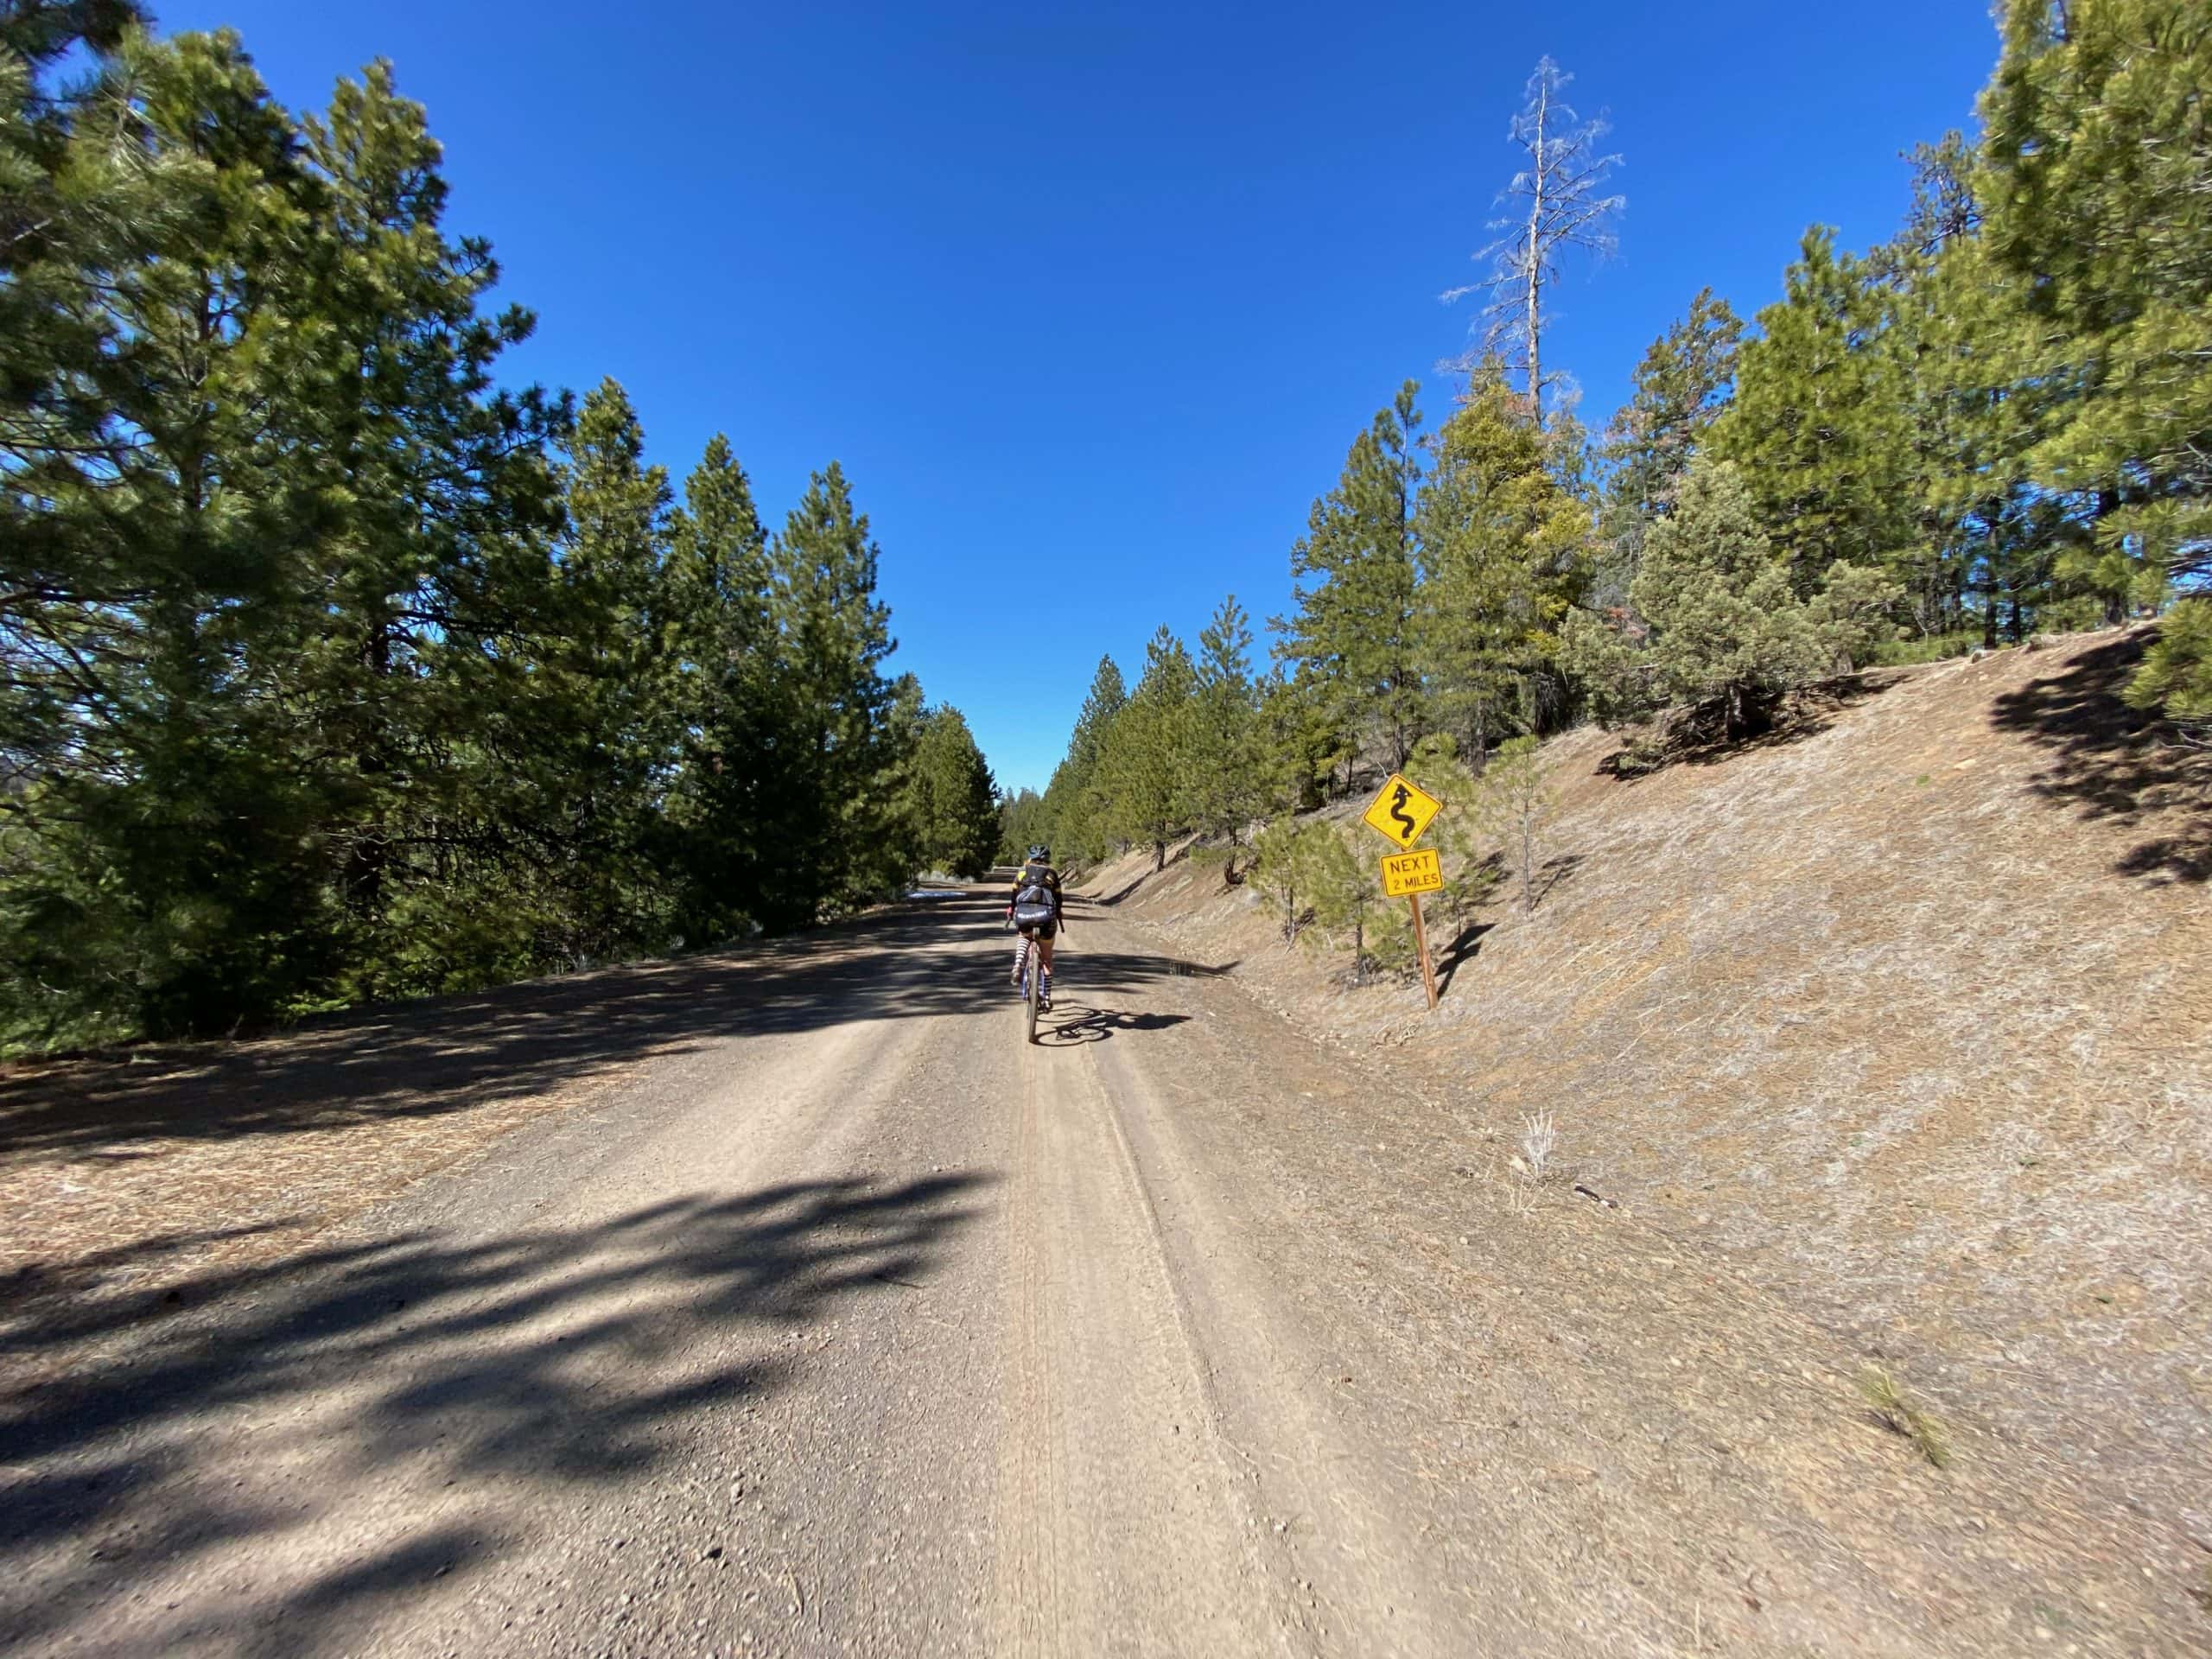 Winding descent sign on NF-16 in the Ochoco National forest near Prineville, OR.